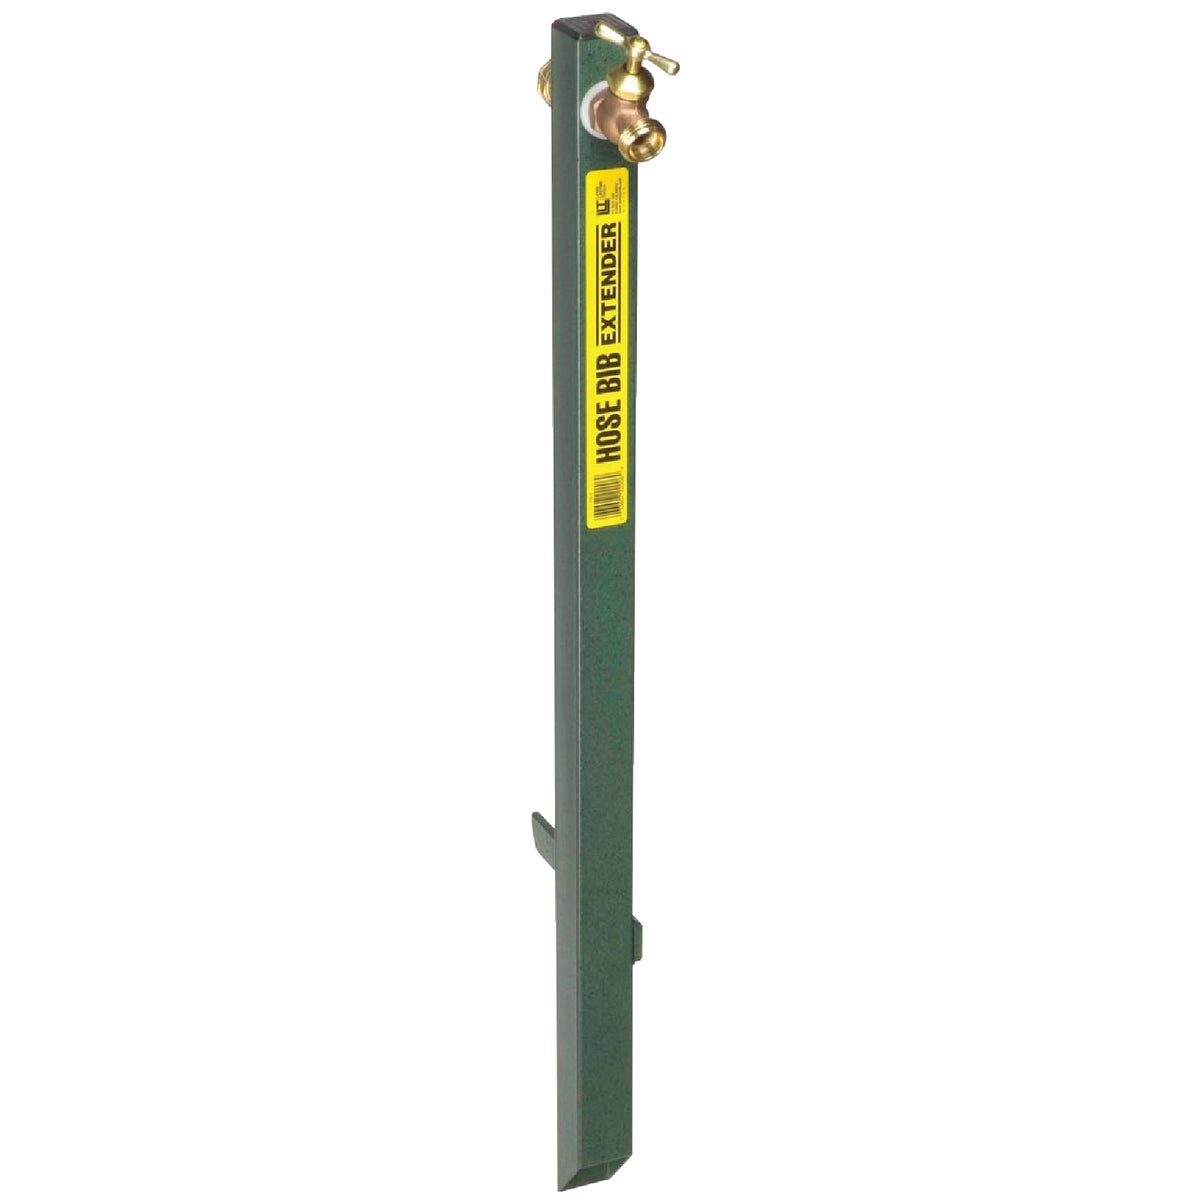 HOSE BIB EXTENDER - HBE-6 by Lewis Lifetime Tools